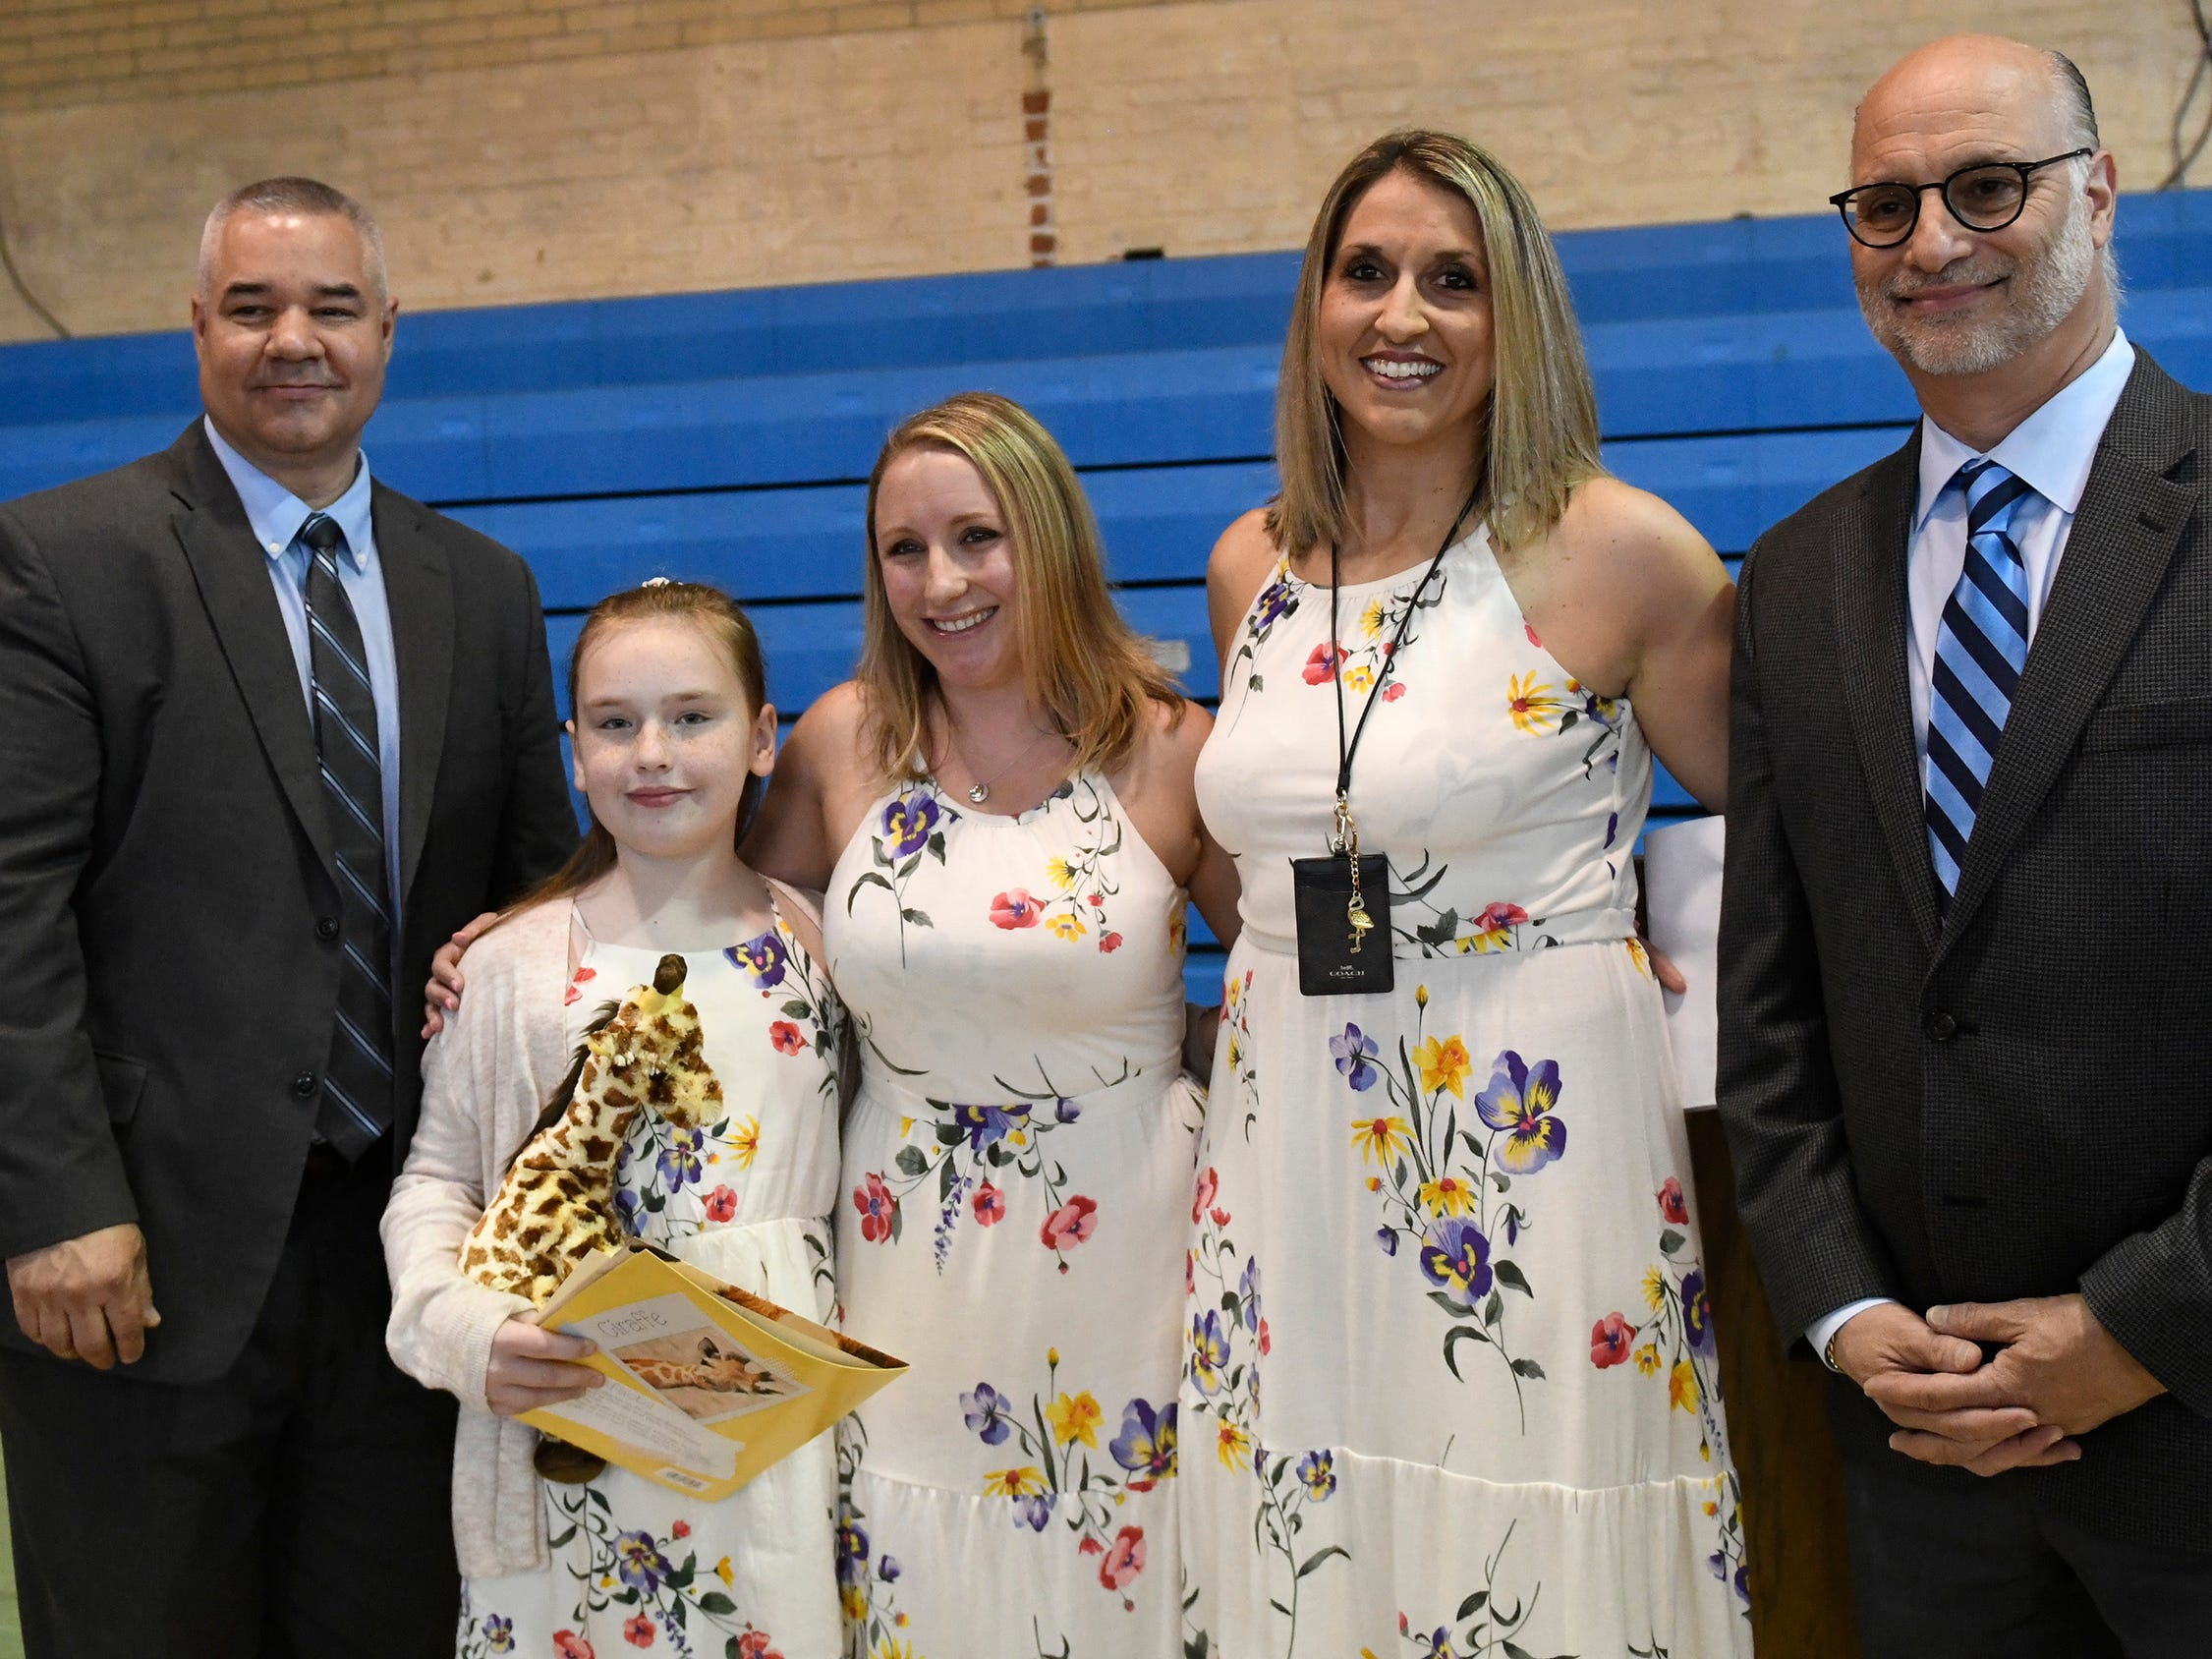 Dippolito Elementary School student Riley Rizzo was presented with a Giraffe Hero Award during a special ceremony on Wednesday, May 15, 2019.